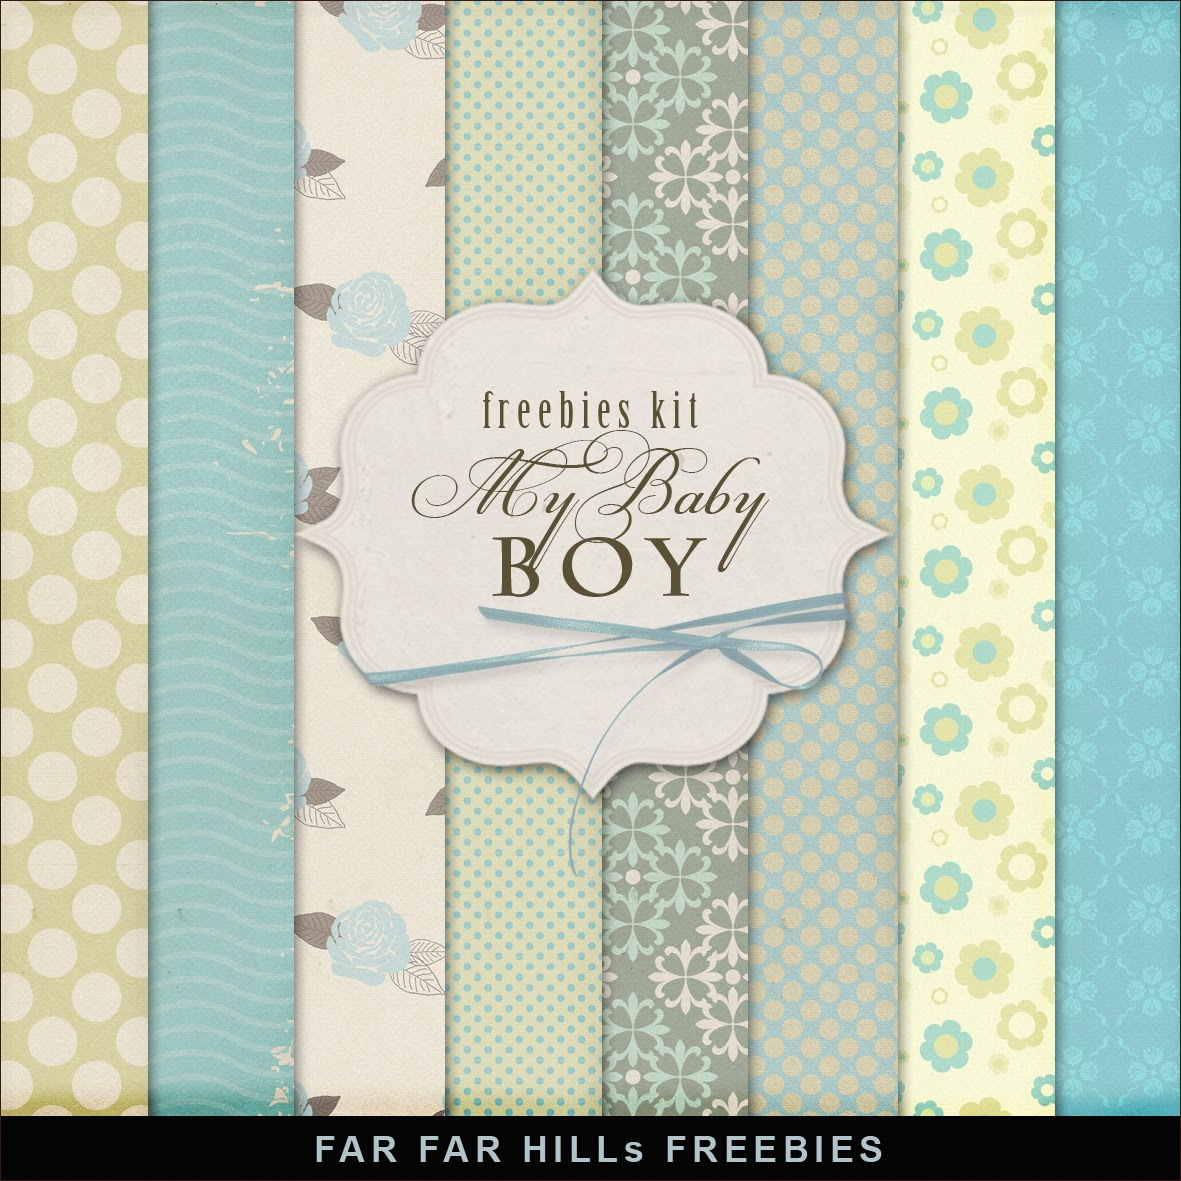 new freebies kit my baby boy far far hill free database of digital illustrations and papers. Black Bedroom Furniture Sets. Home Design Ideas